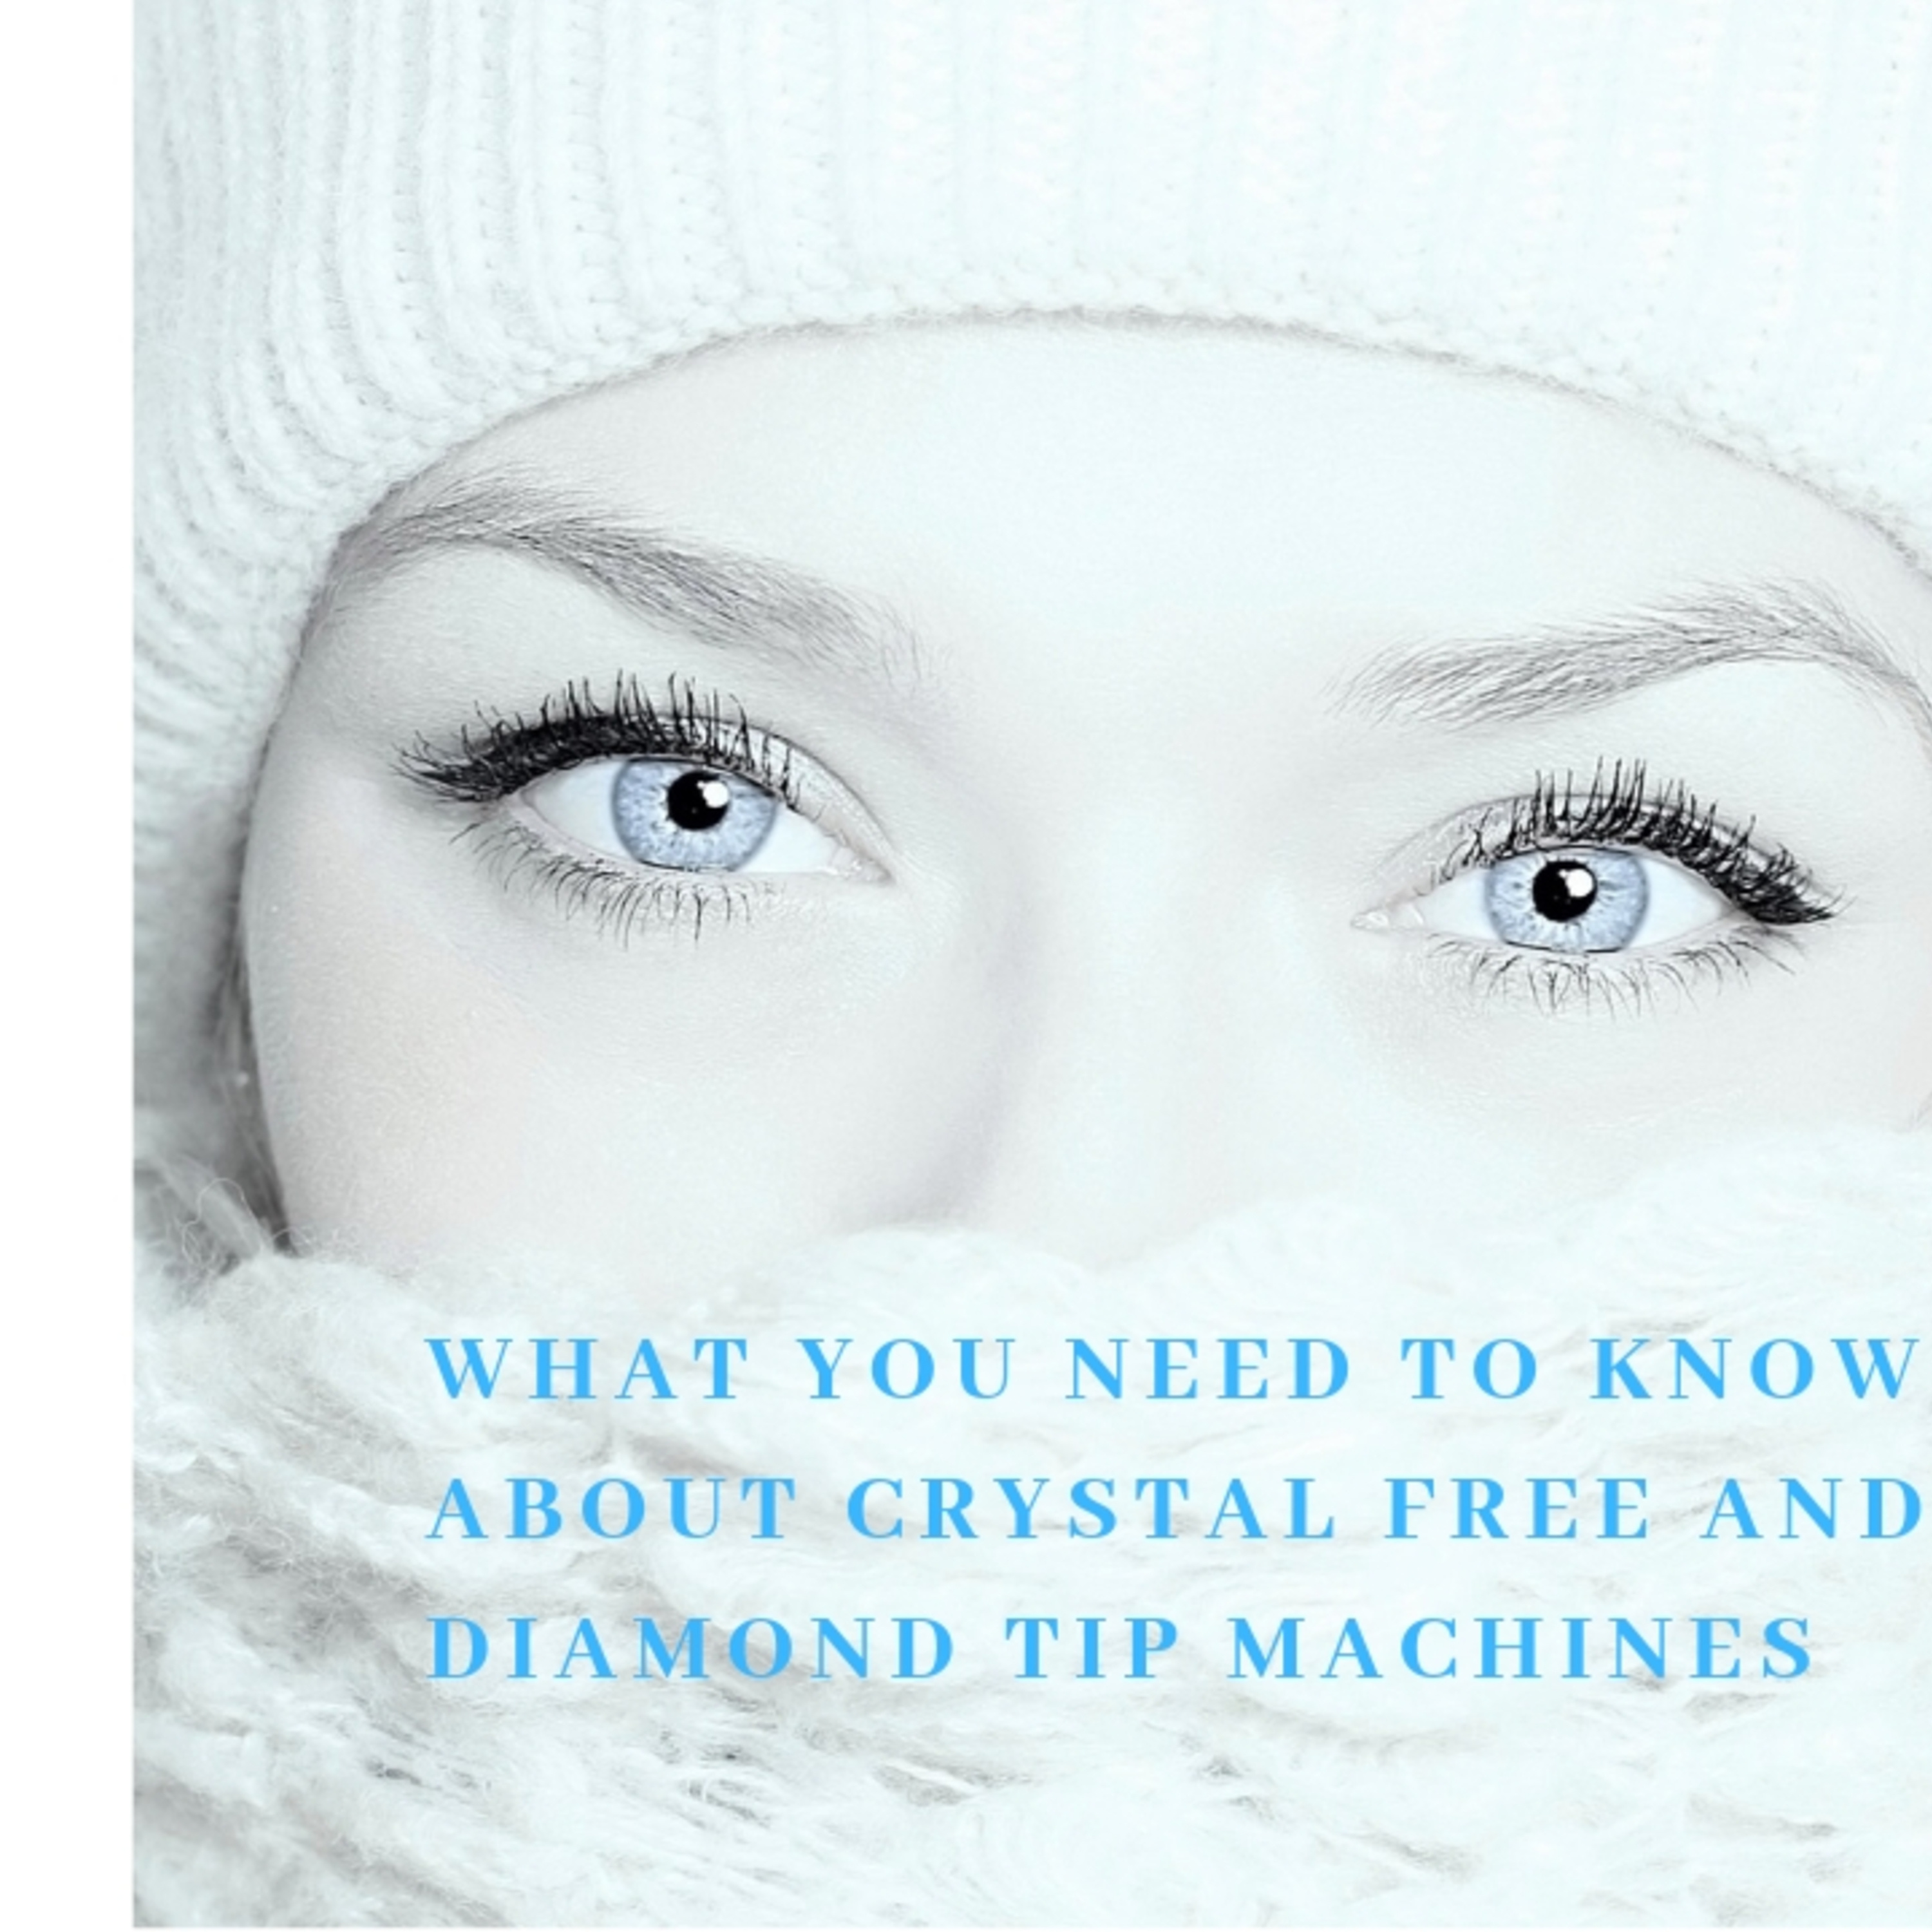 Episode 9 What you need to know about Crystal free and Diamond tip machines